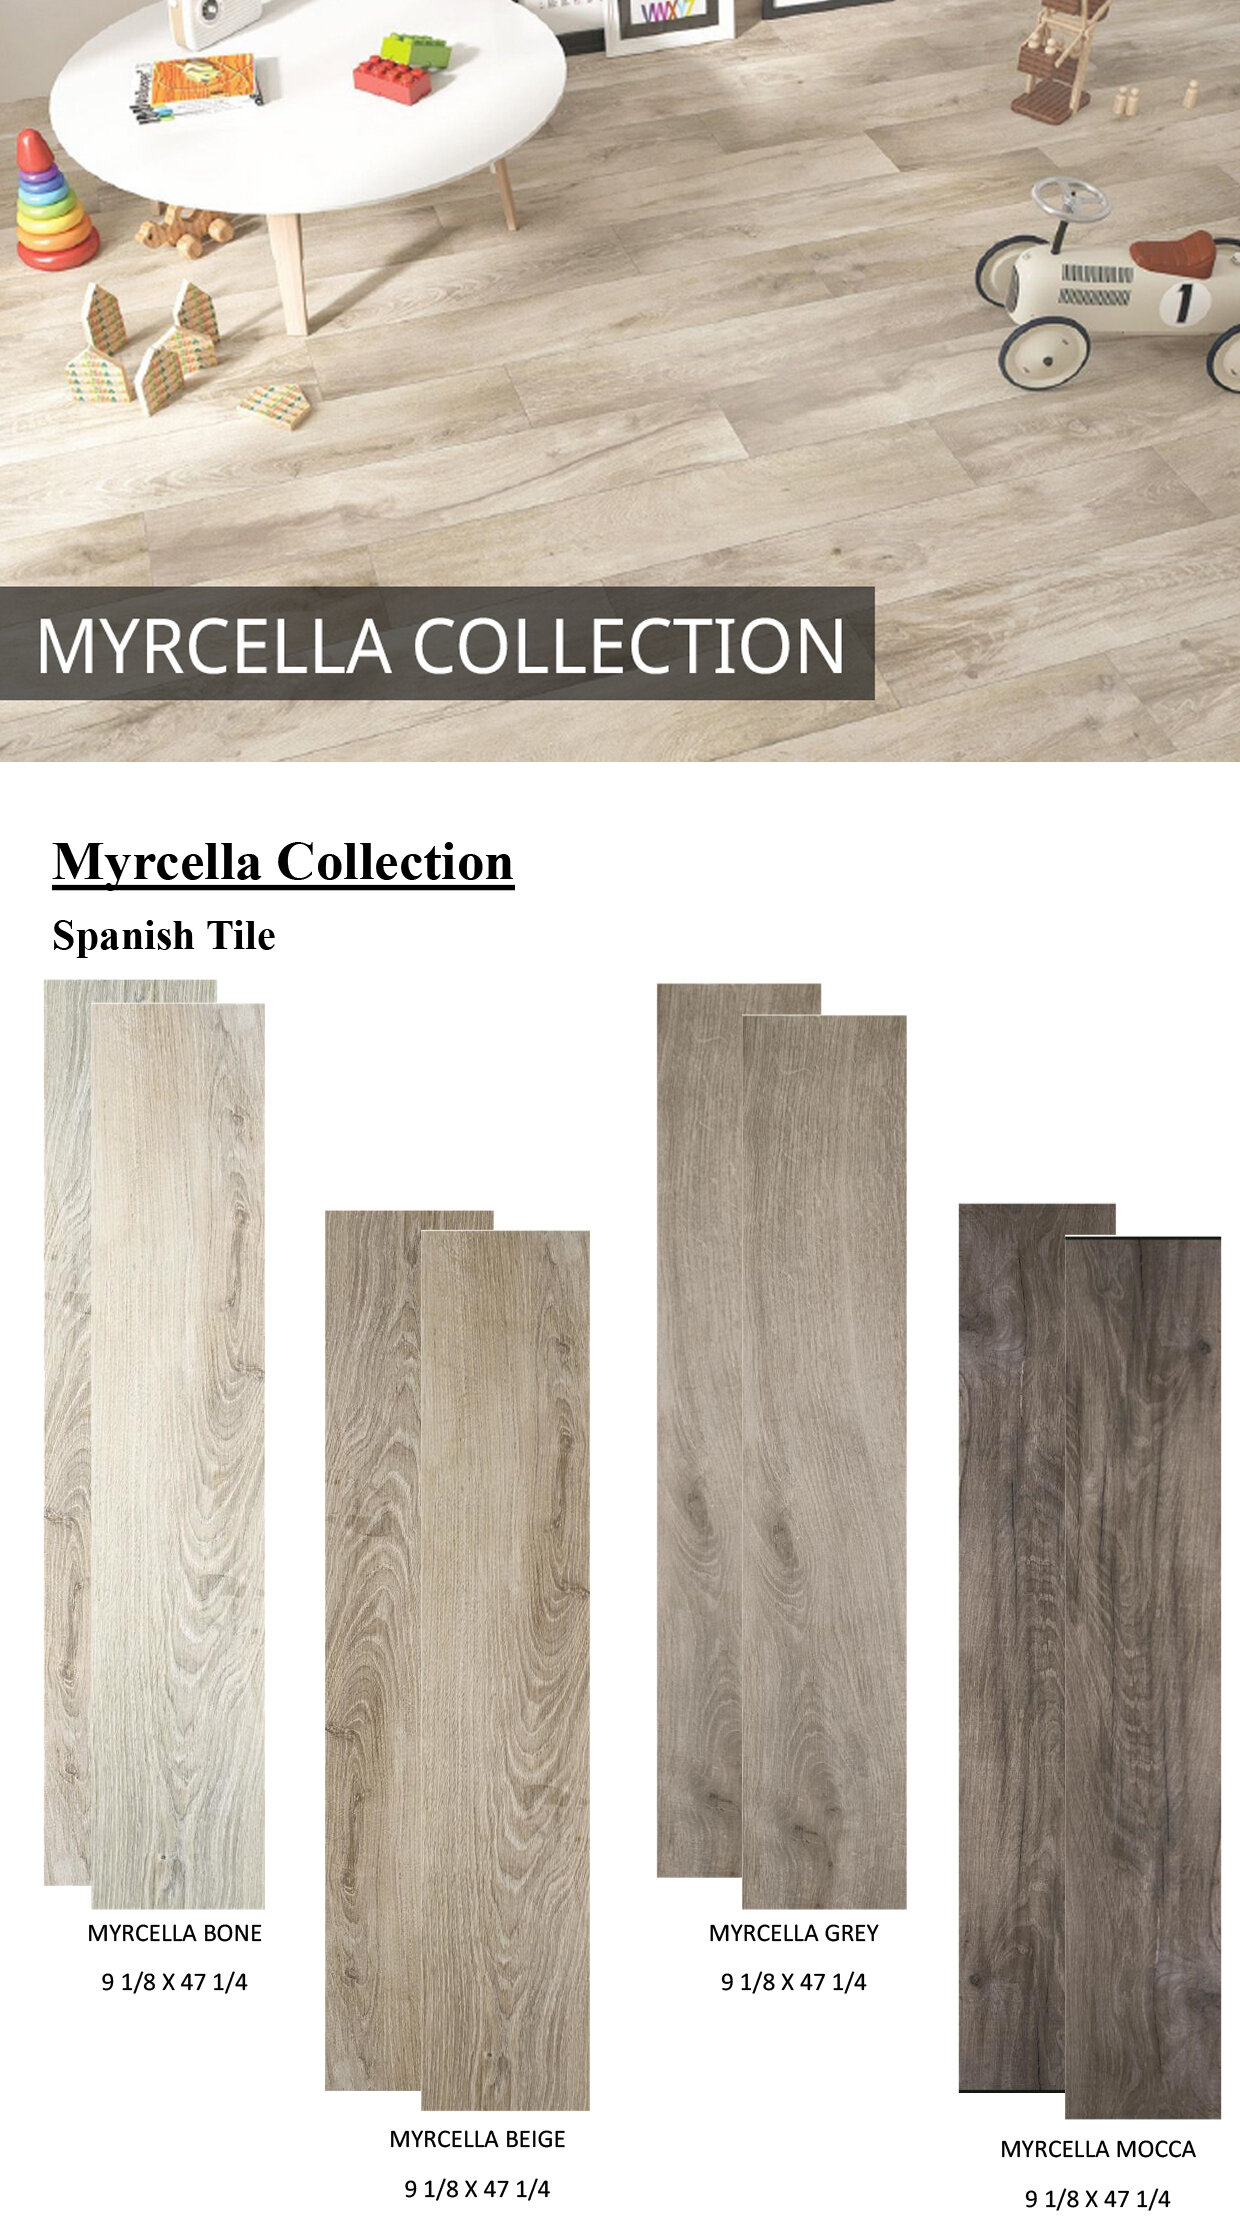 MyrcellaCollectioncombine